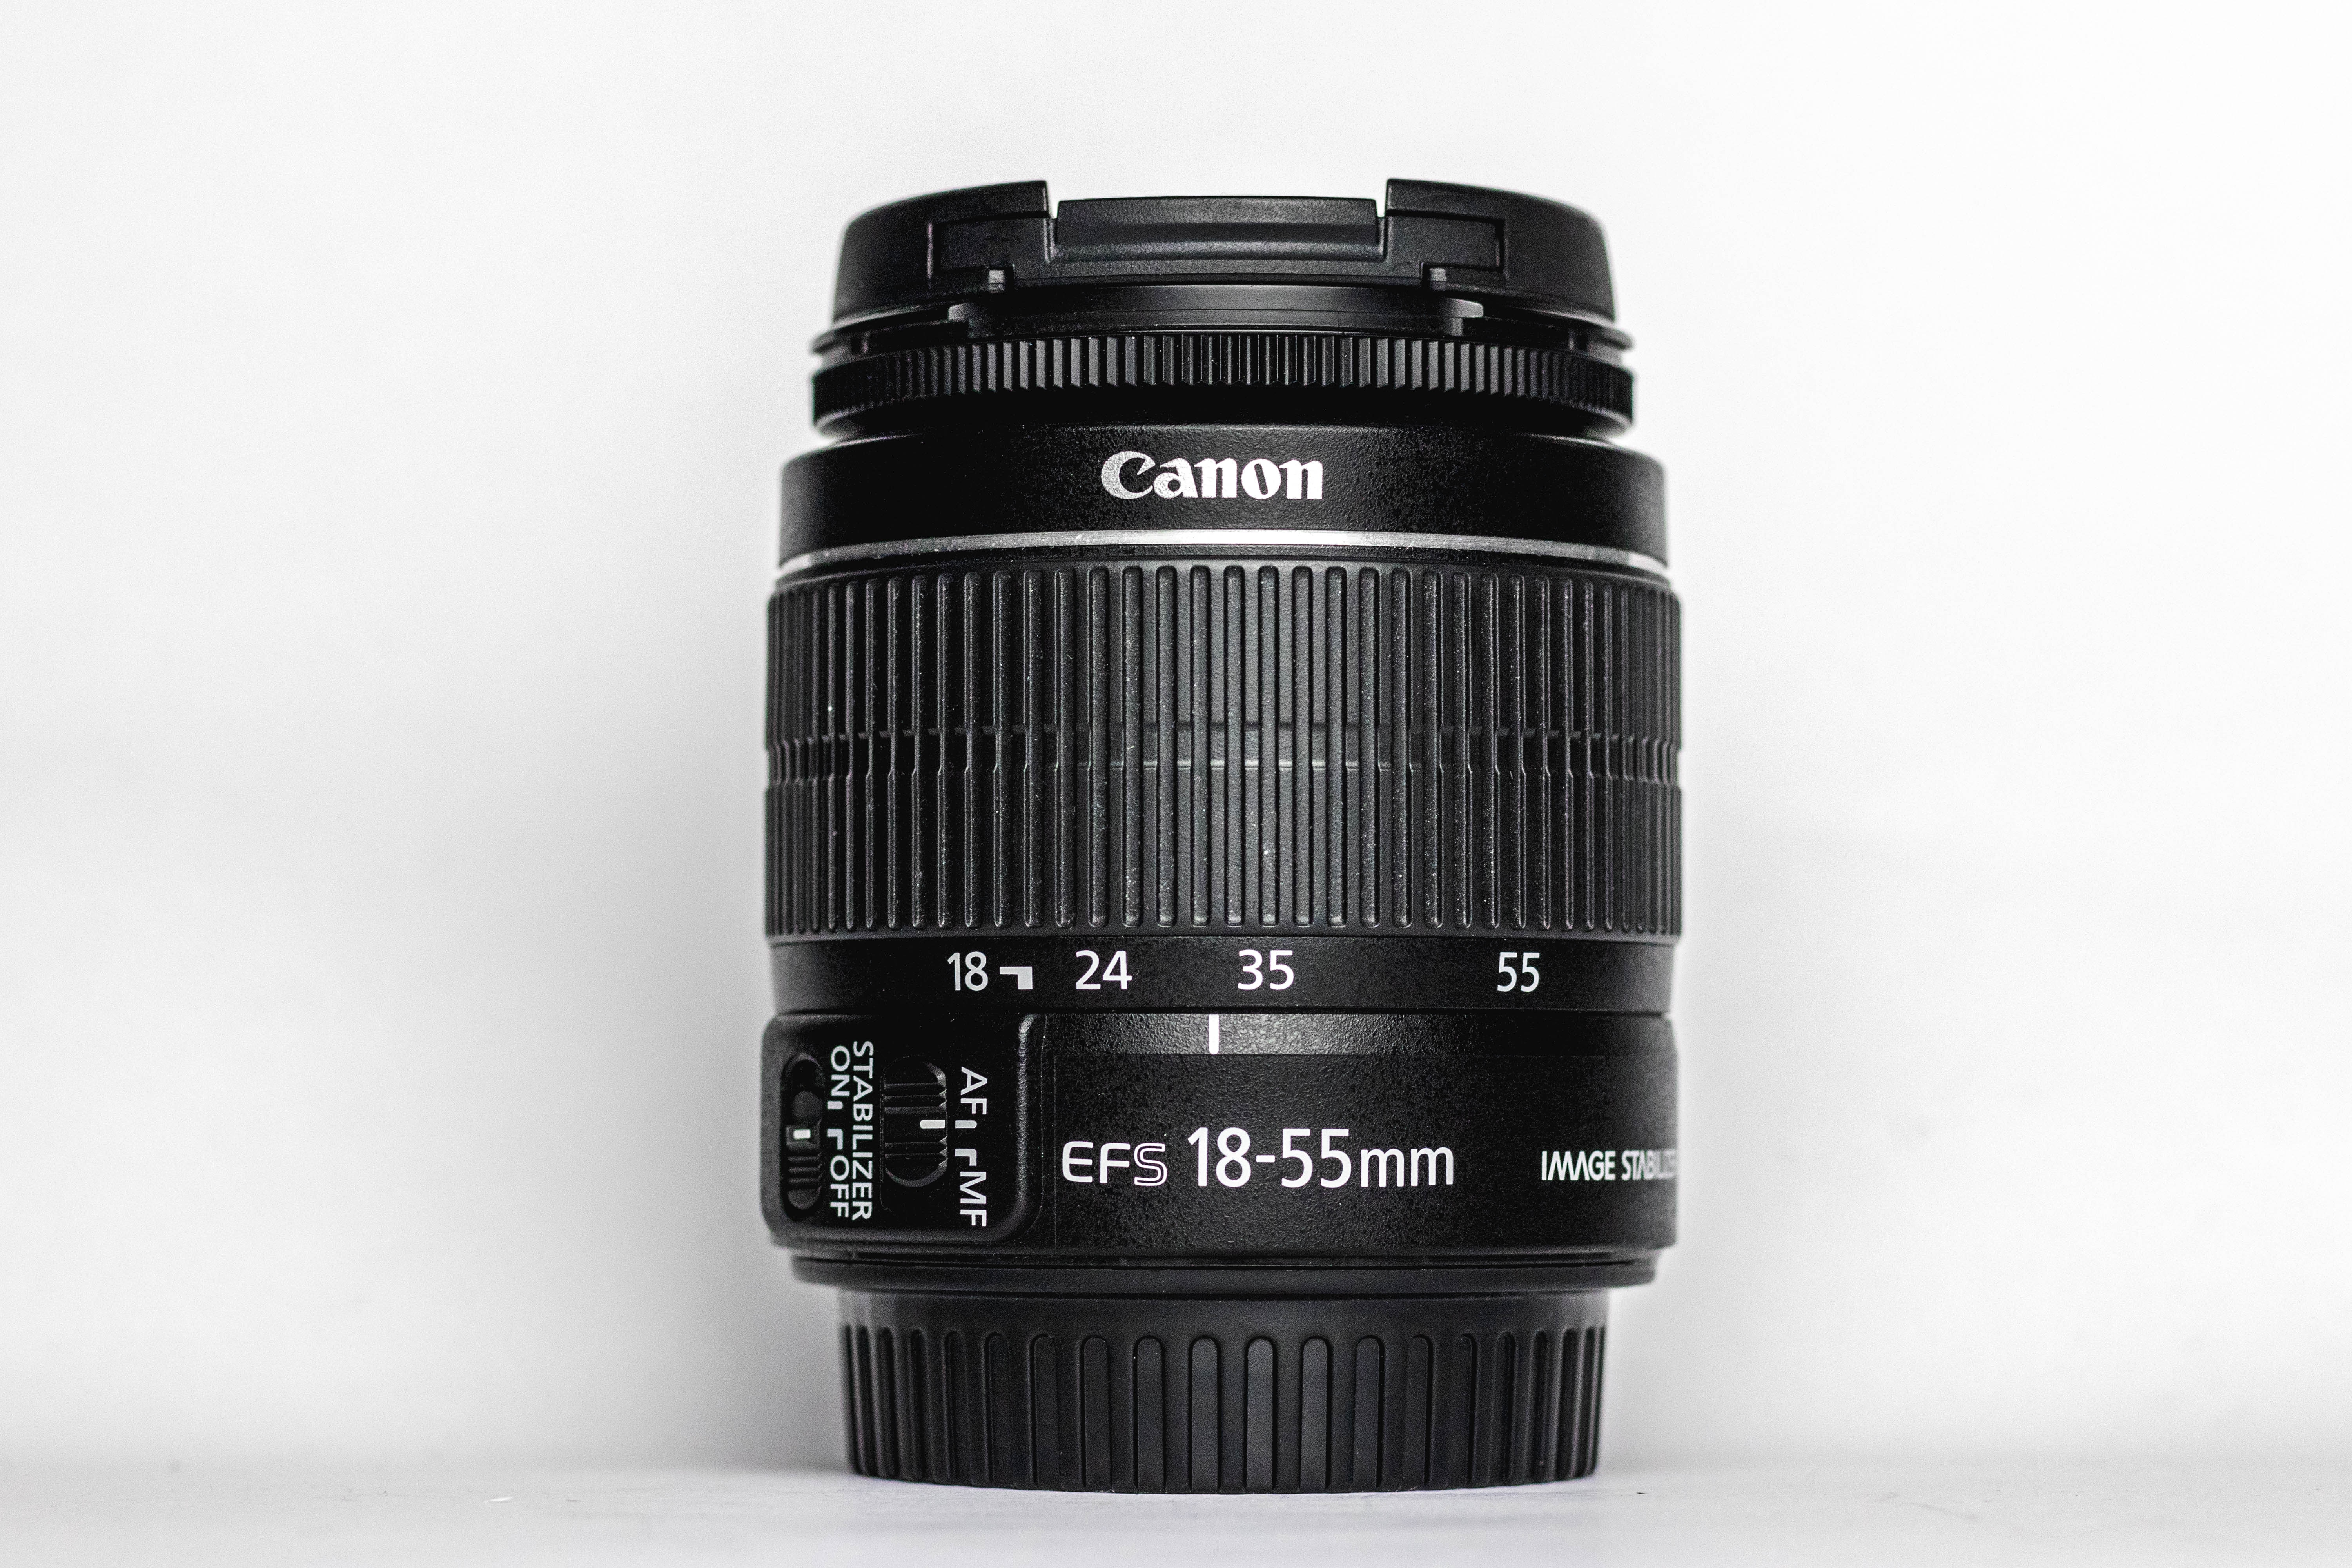 Canon 50mm 1.4 vs. 1.8 x3 Lens Review – There's A Clear Winner